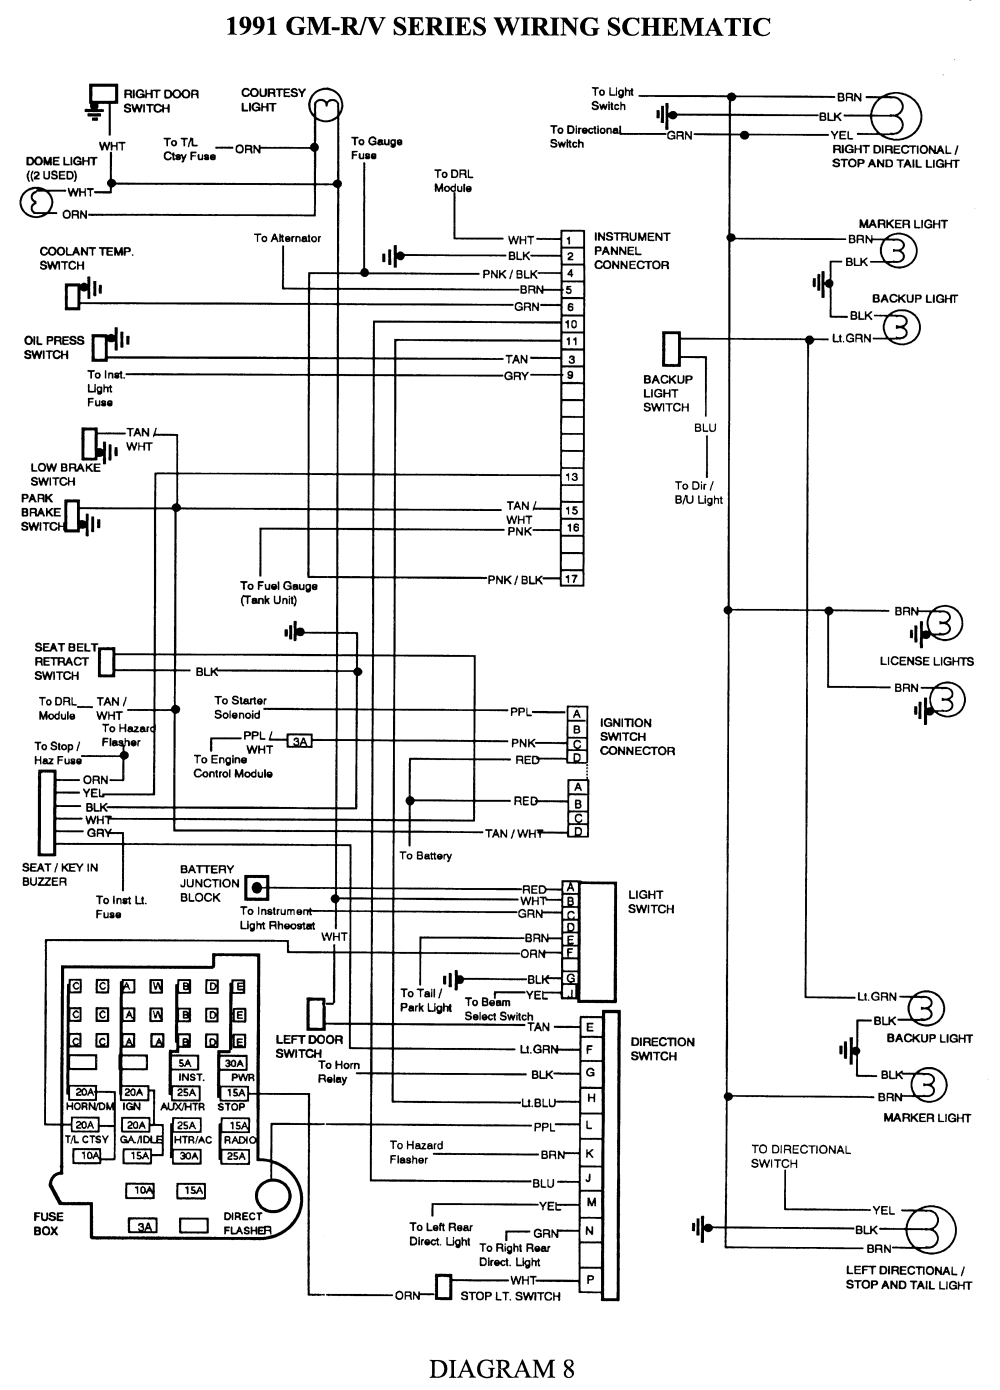 95 Blazer Wiring Diagram